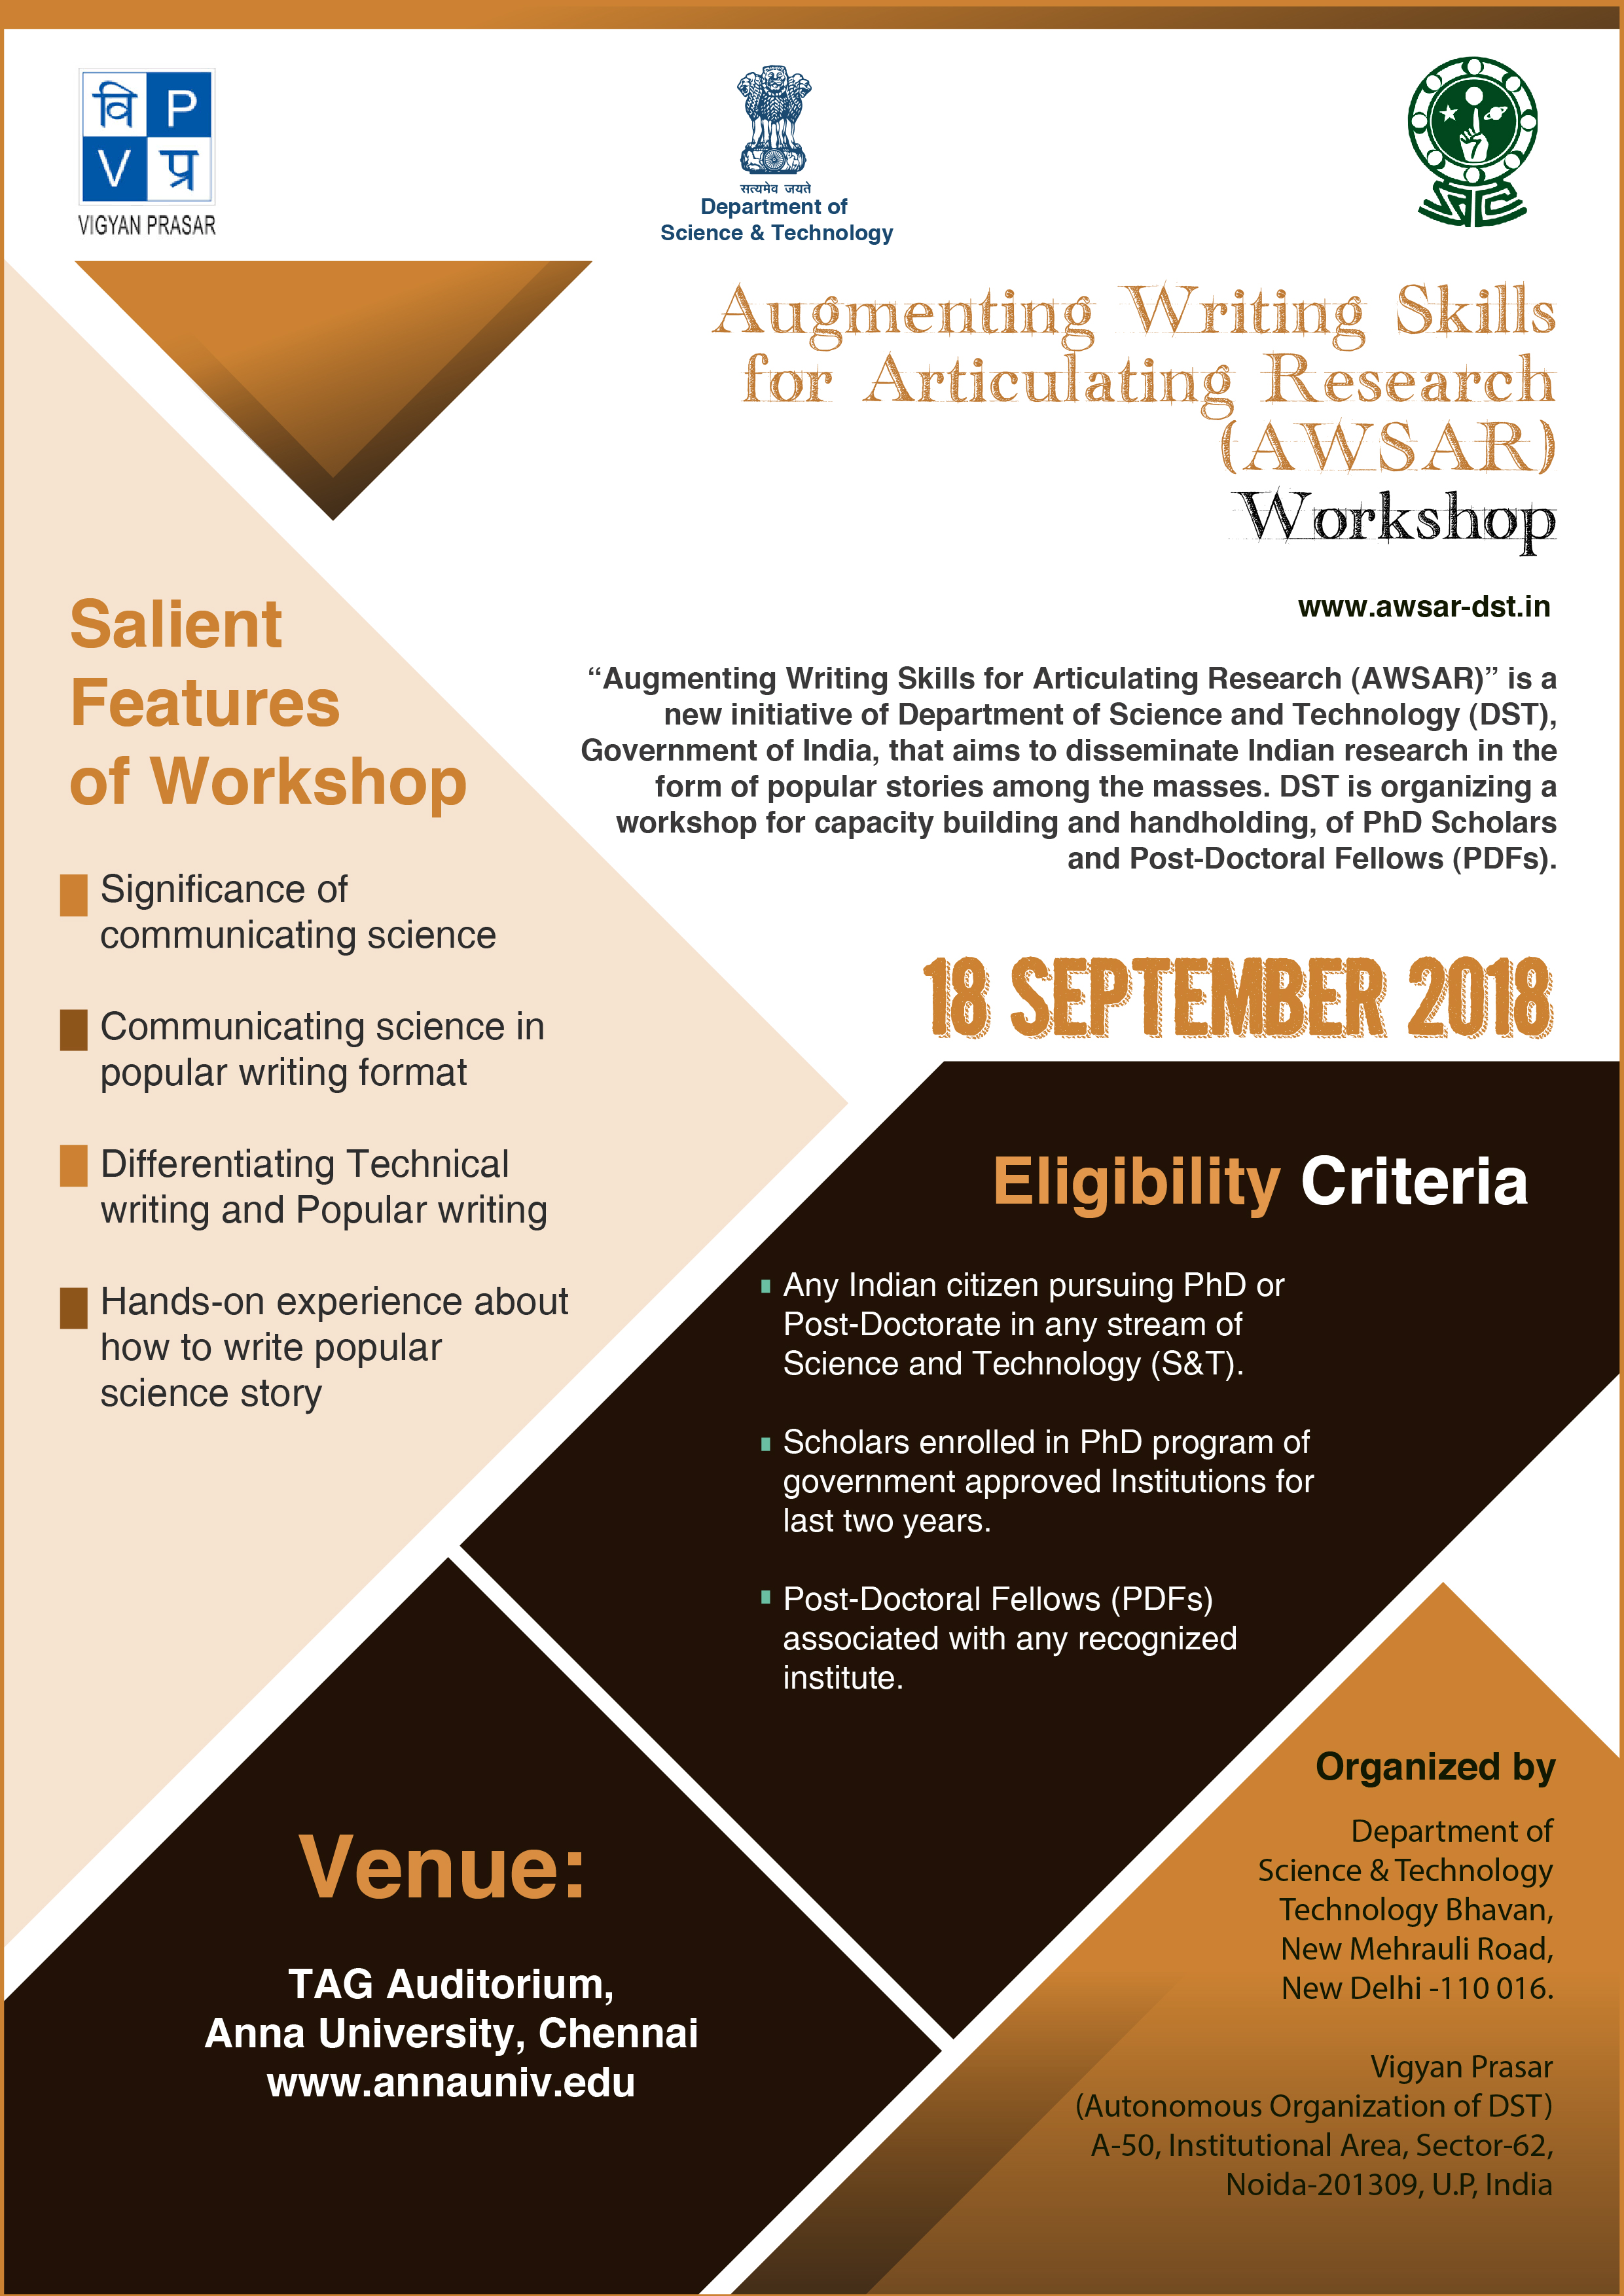 AWSAR Workshop, Chennai